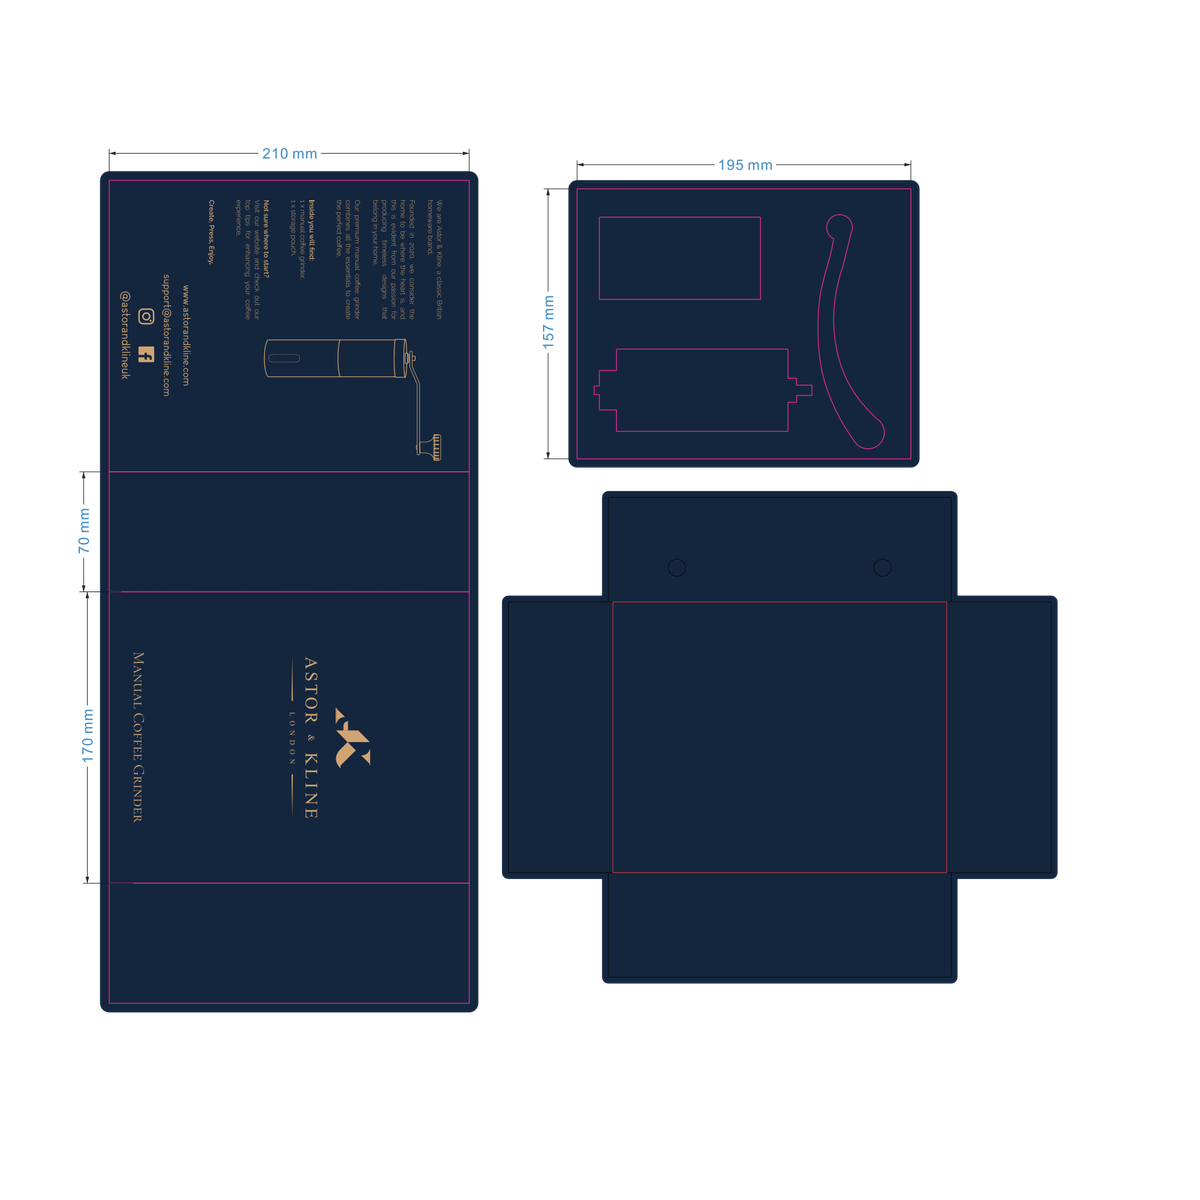 Design Box for New Product